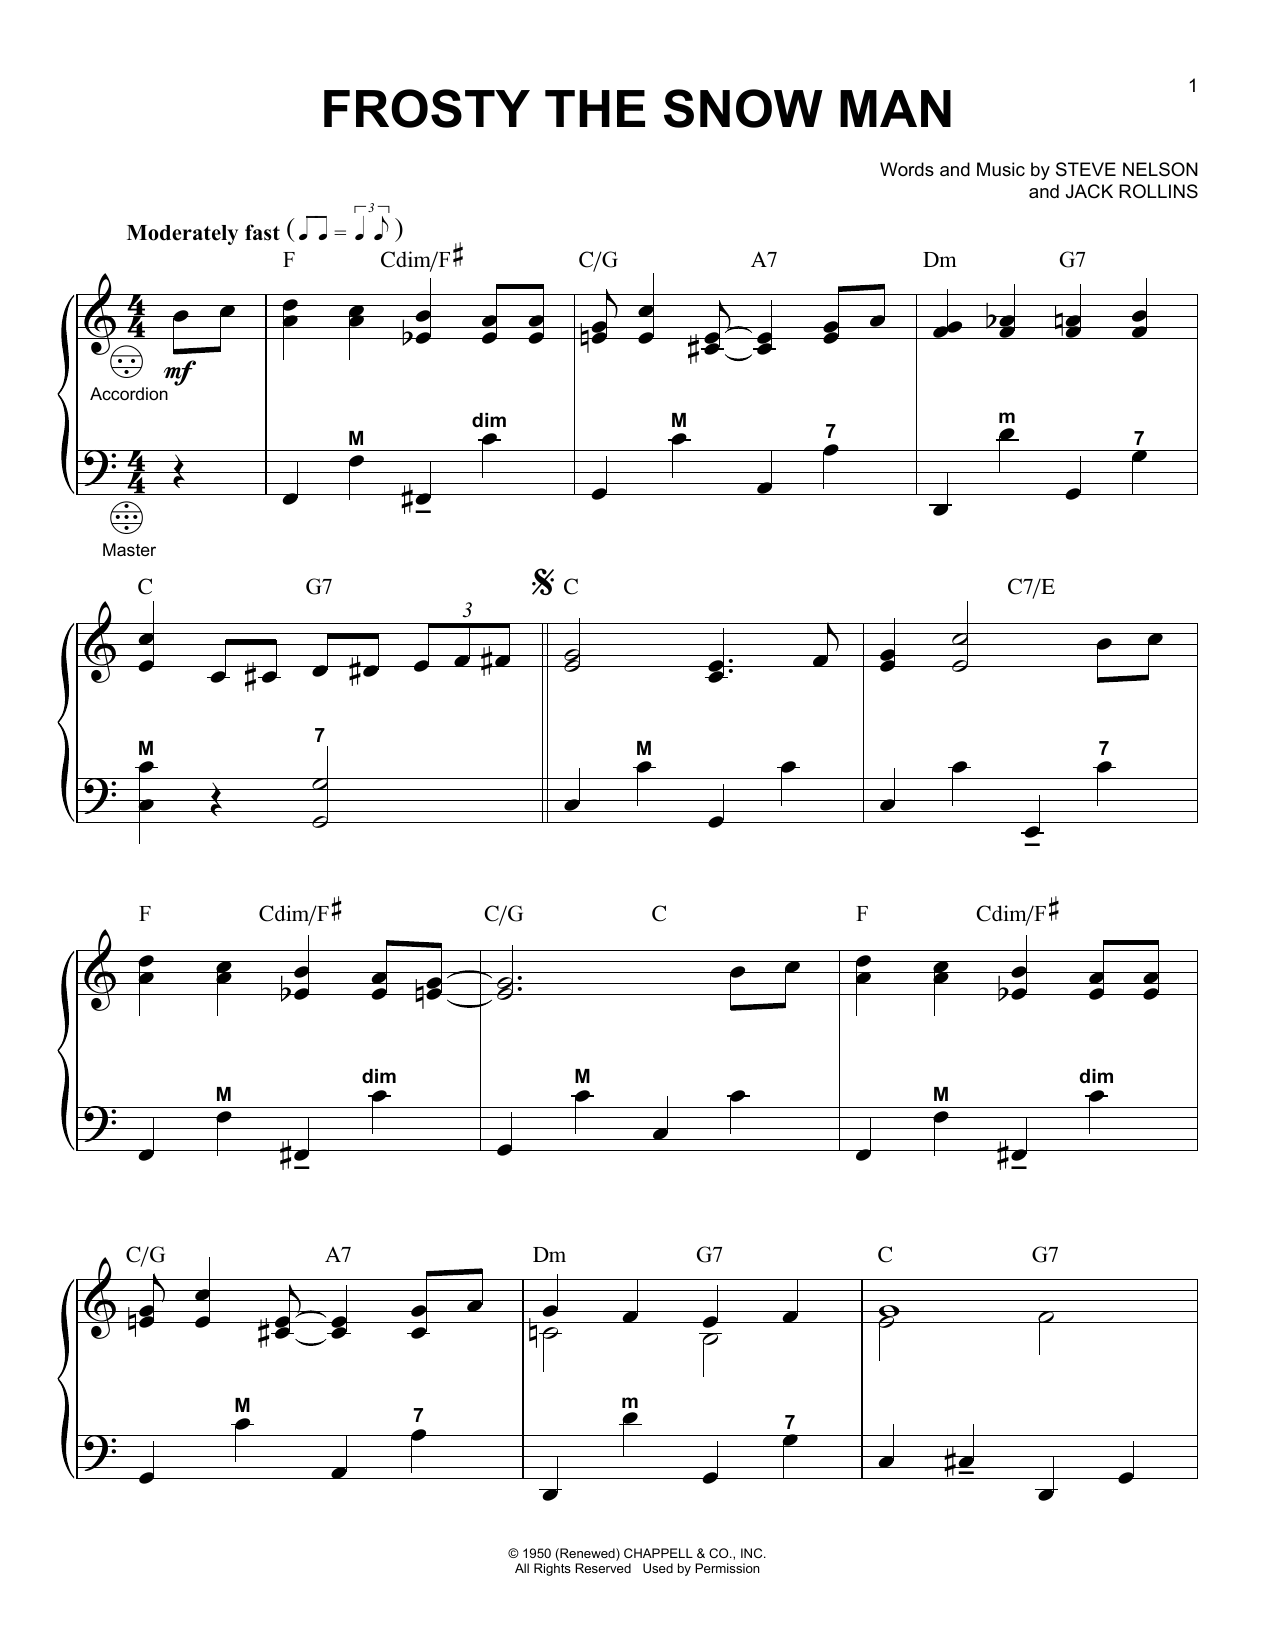 Frosty The Snow Man sheet music